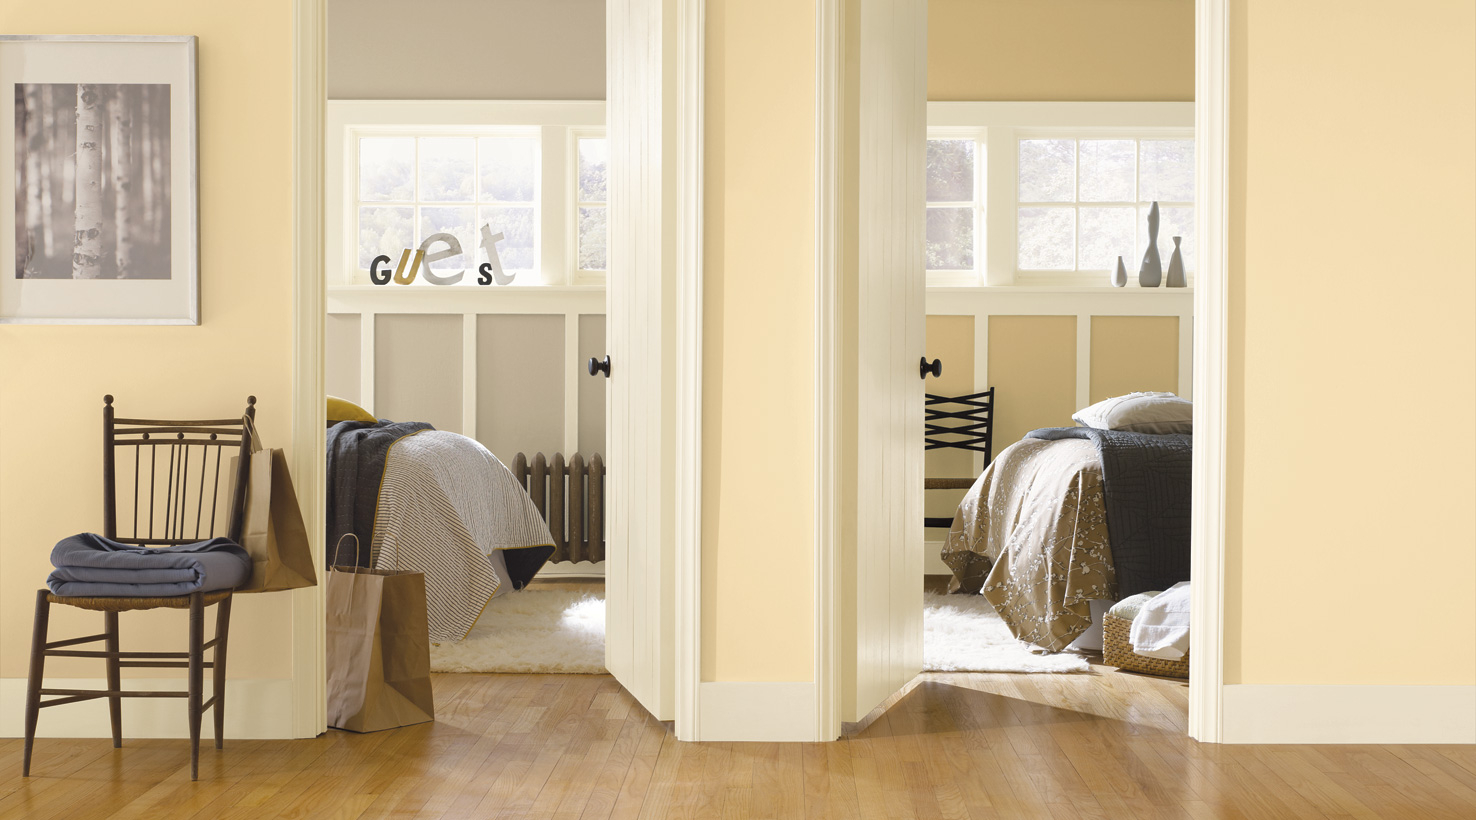 Bedroom Paint Color Ideas Inspiration Gallery Sherwin Williams intended for measurements 1476 X 820